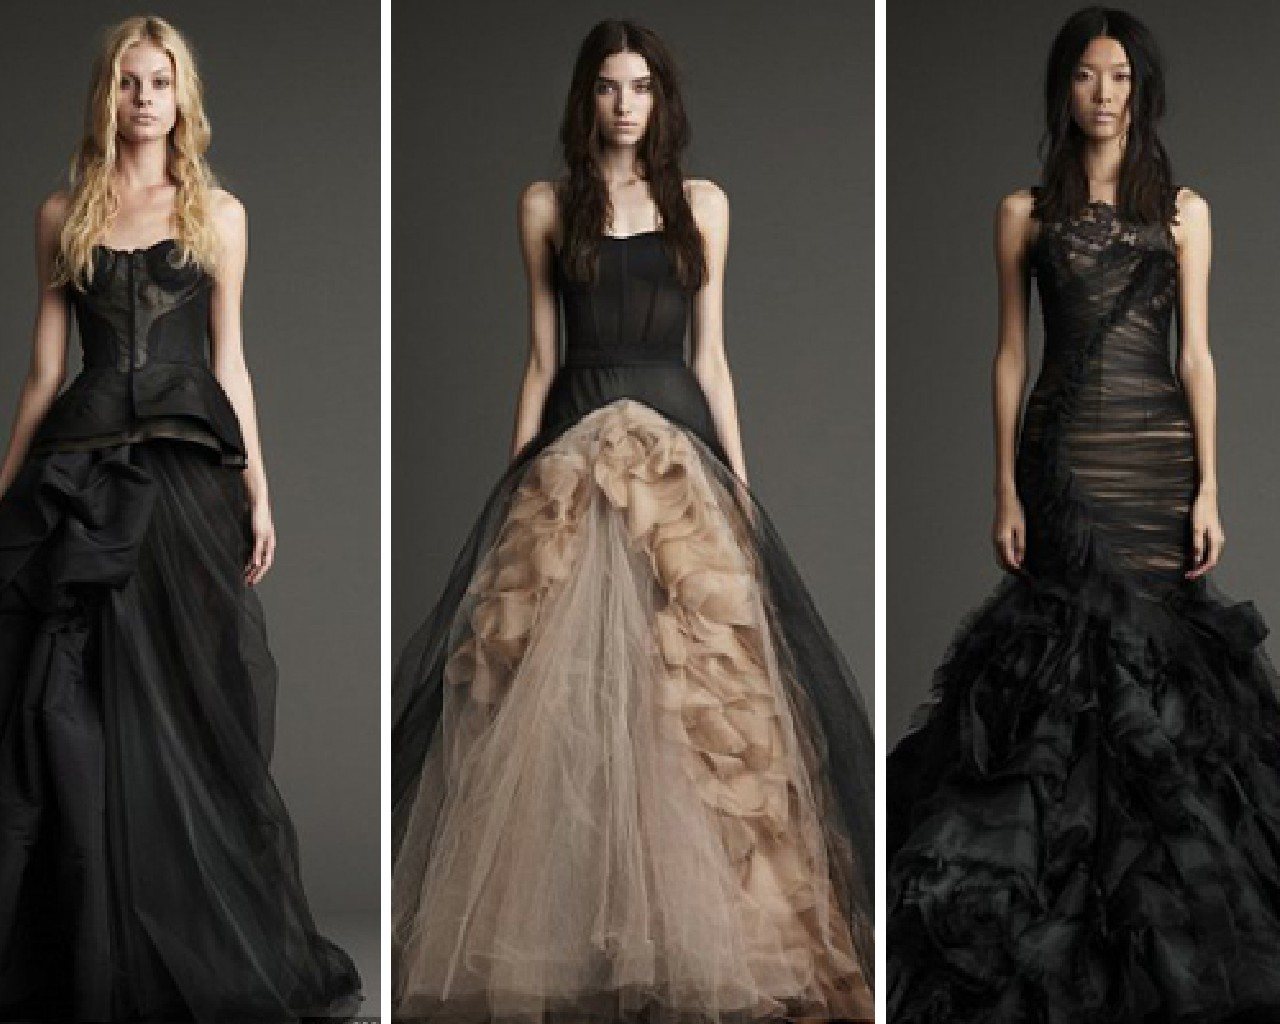 Black Wedding Gowns: Halls Of Strange Wonders: The Most Precious Of All